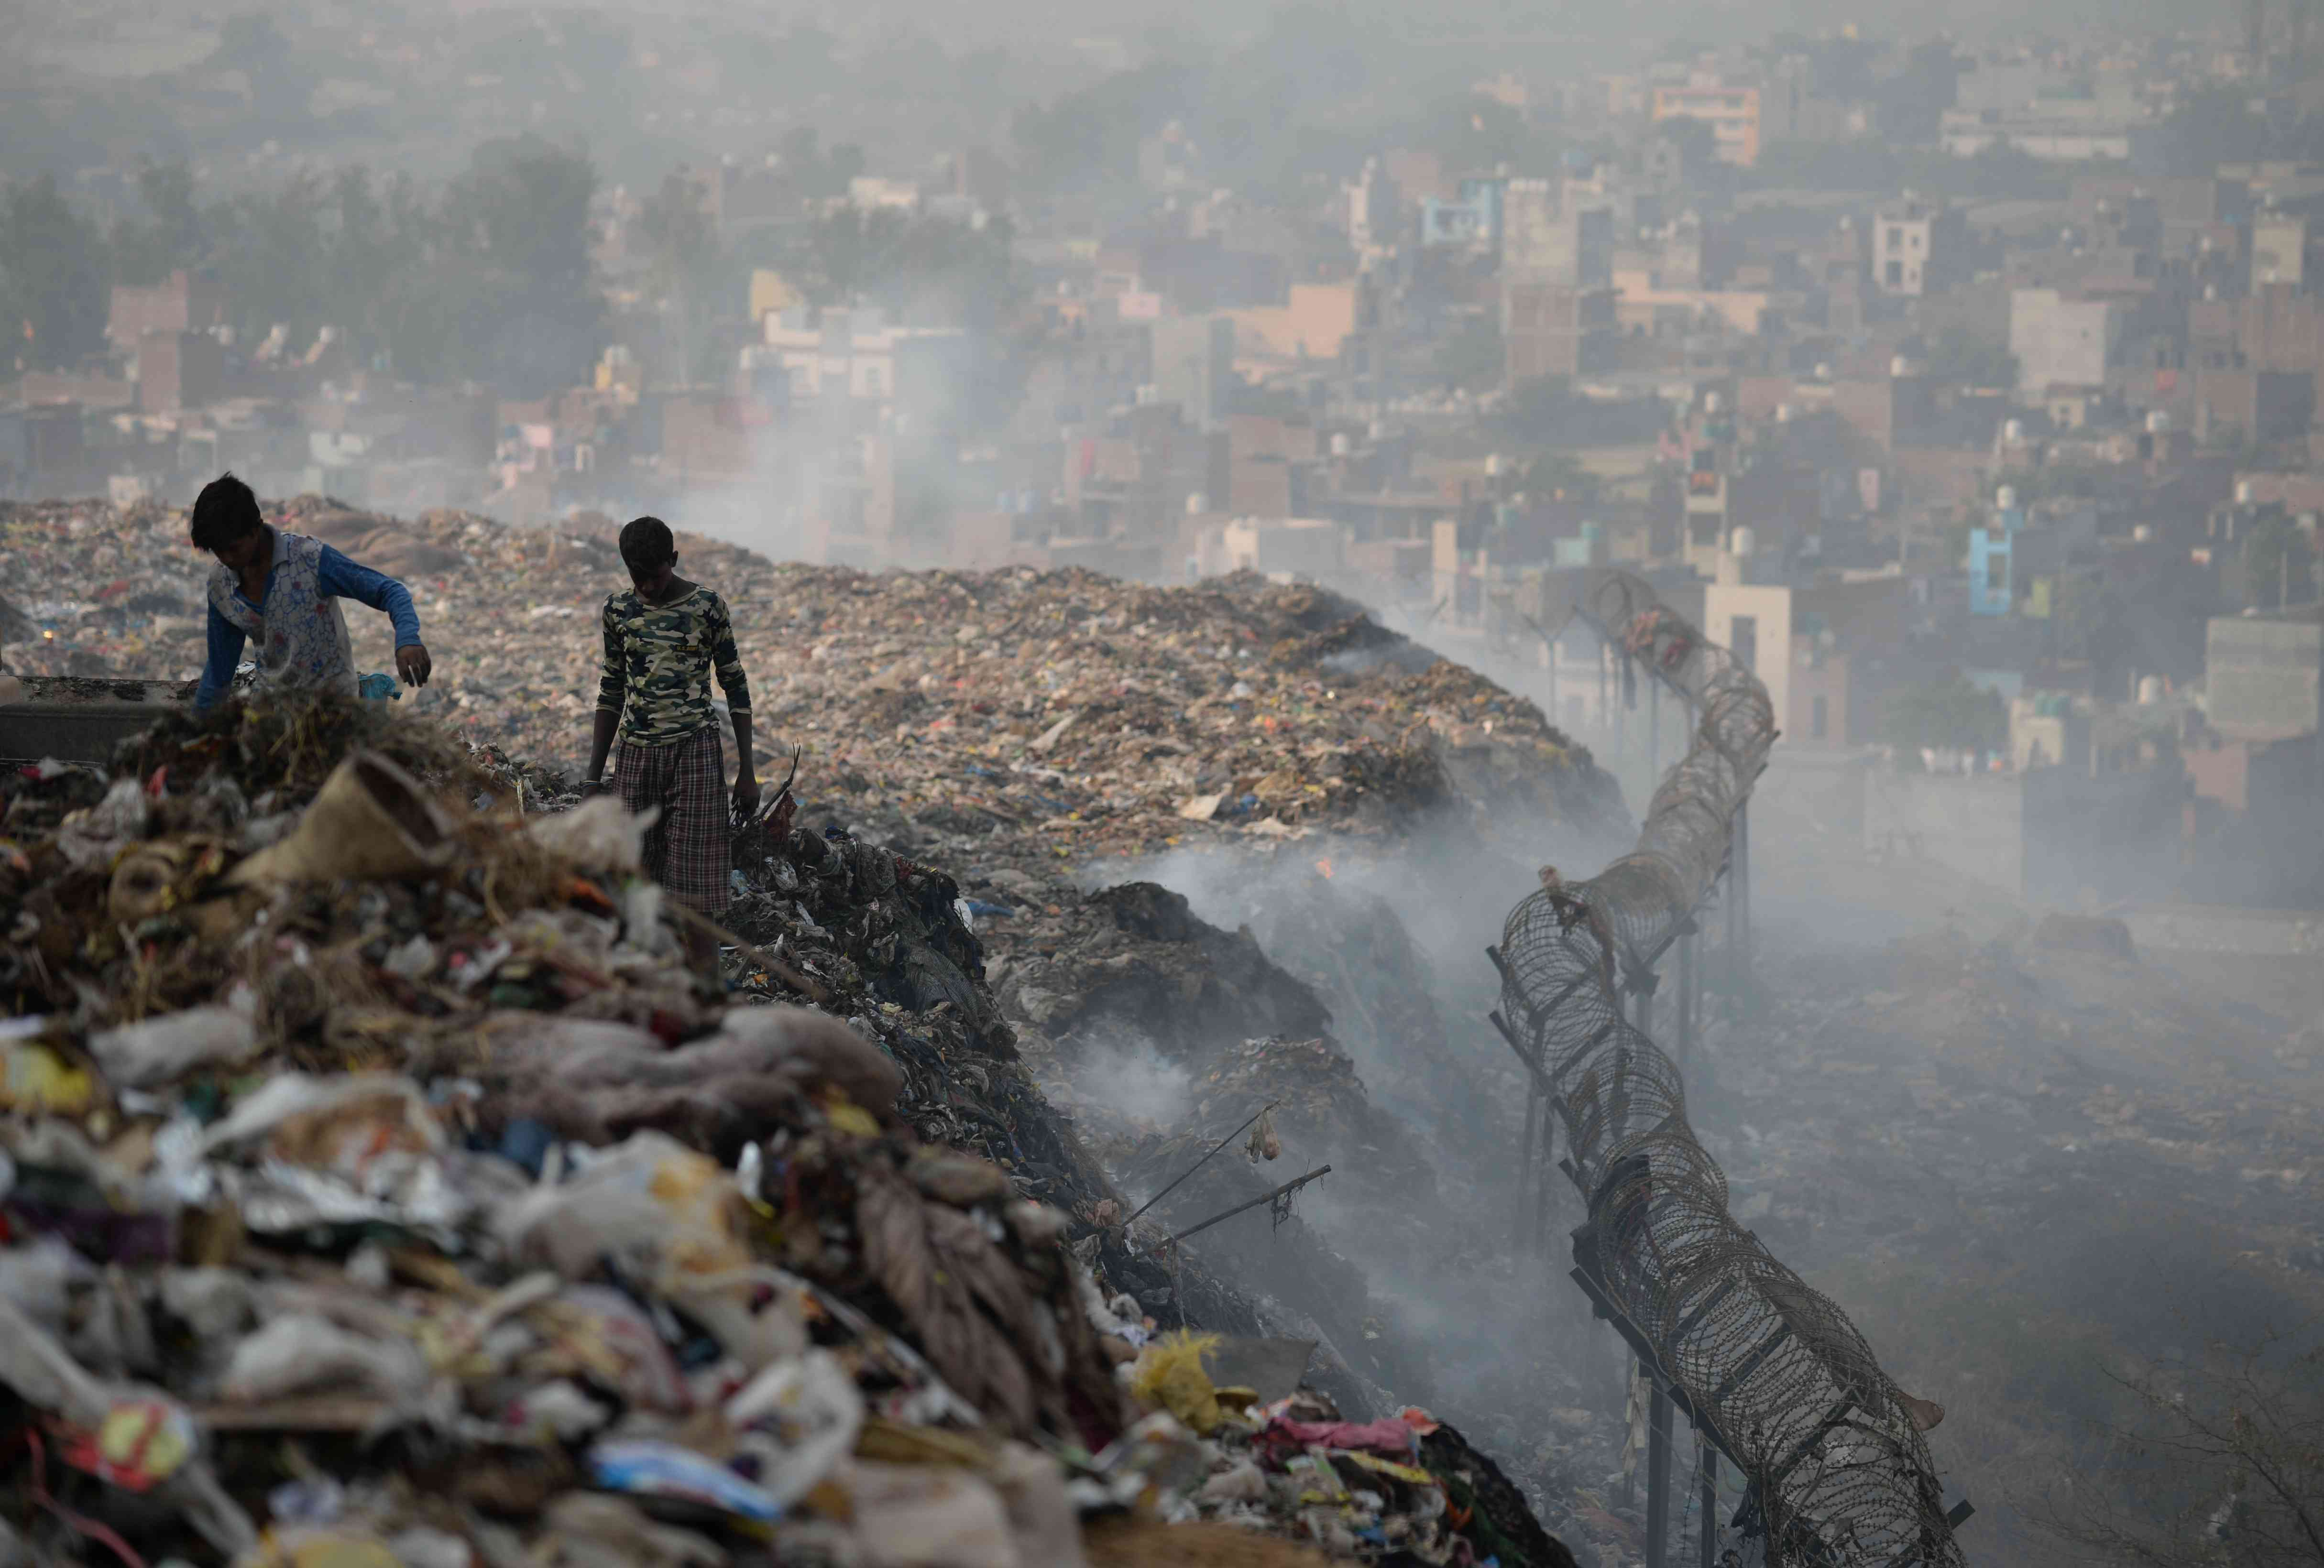 Ragpickers sort through the mountain of garbage at Bhalswa for usable material. (Photo credit: Sajjad Hussain/AFP).